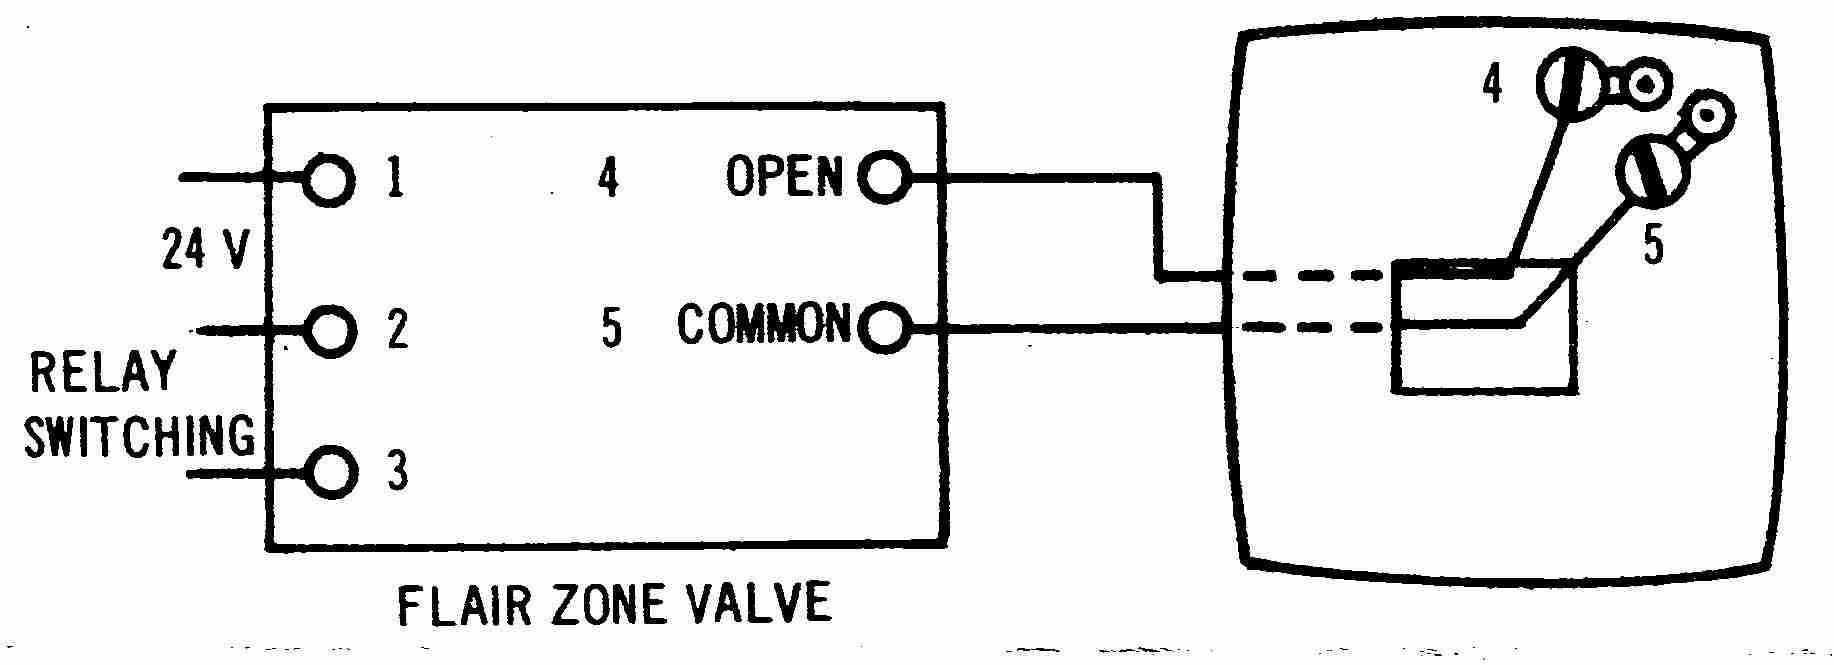 Room Thermostat Wiring Diagrams For Hvac Systems Diagram As Well Central Vacuum On Industrial Flair 2 Wire Thermosat